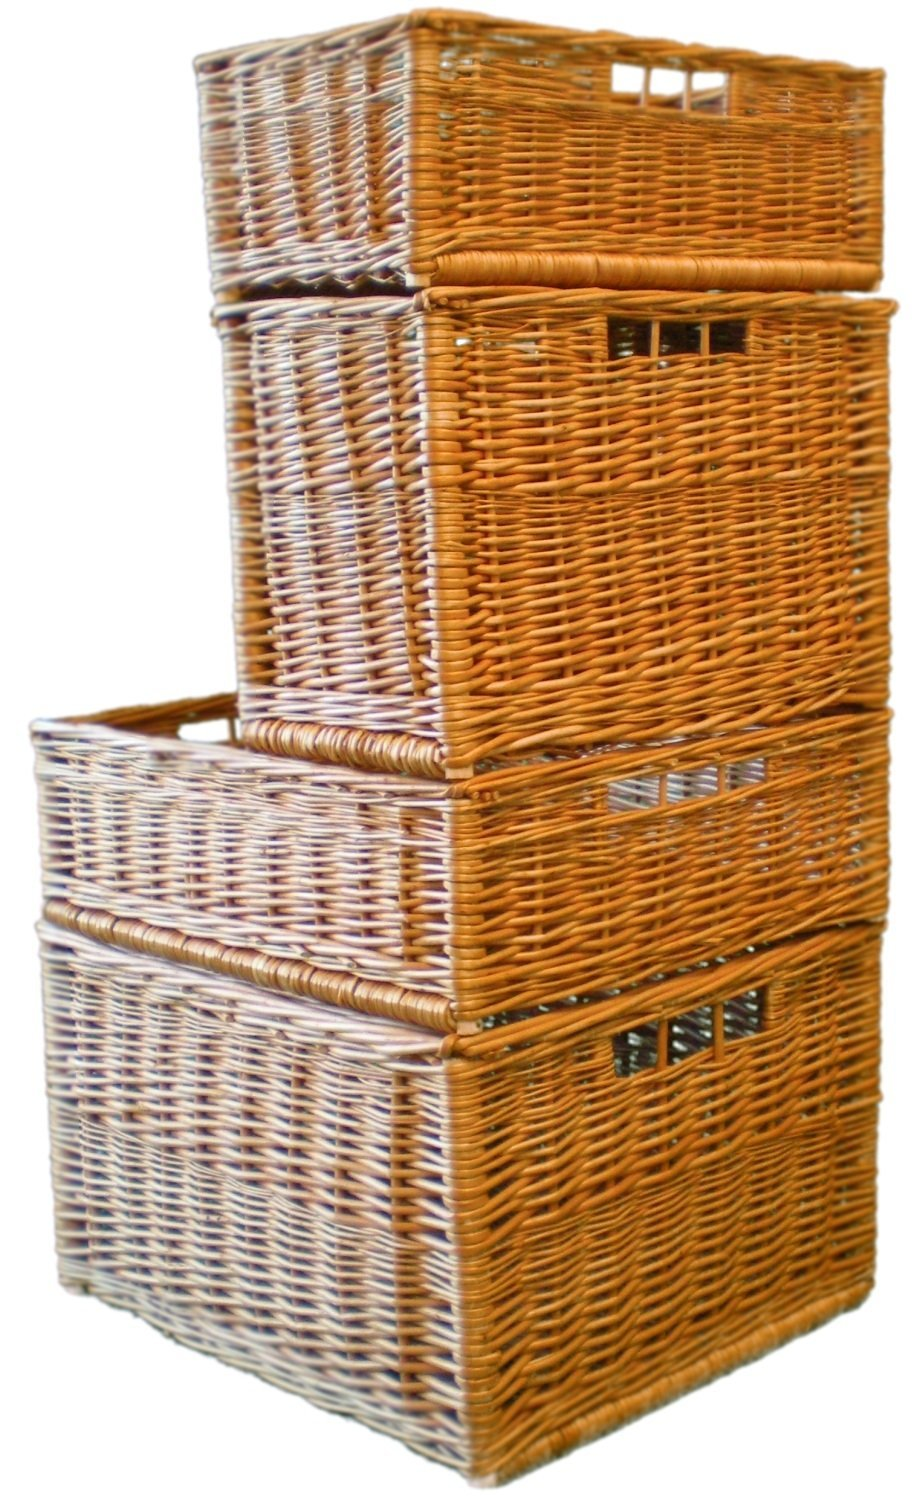 W1685 Storage Basket